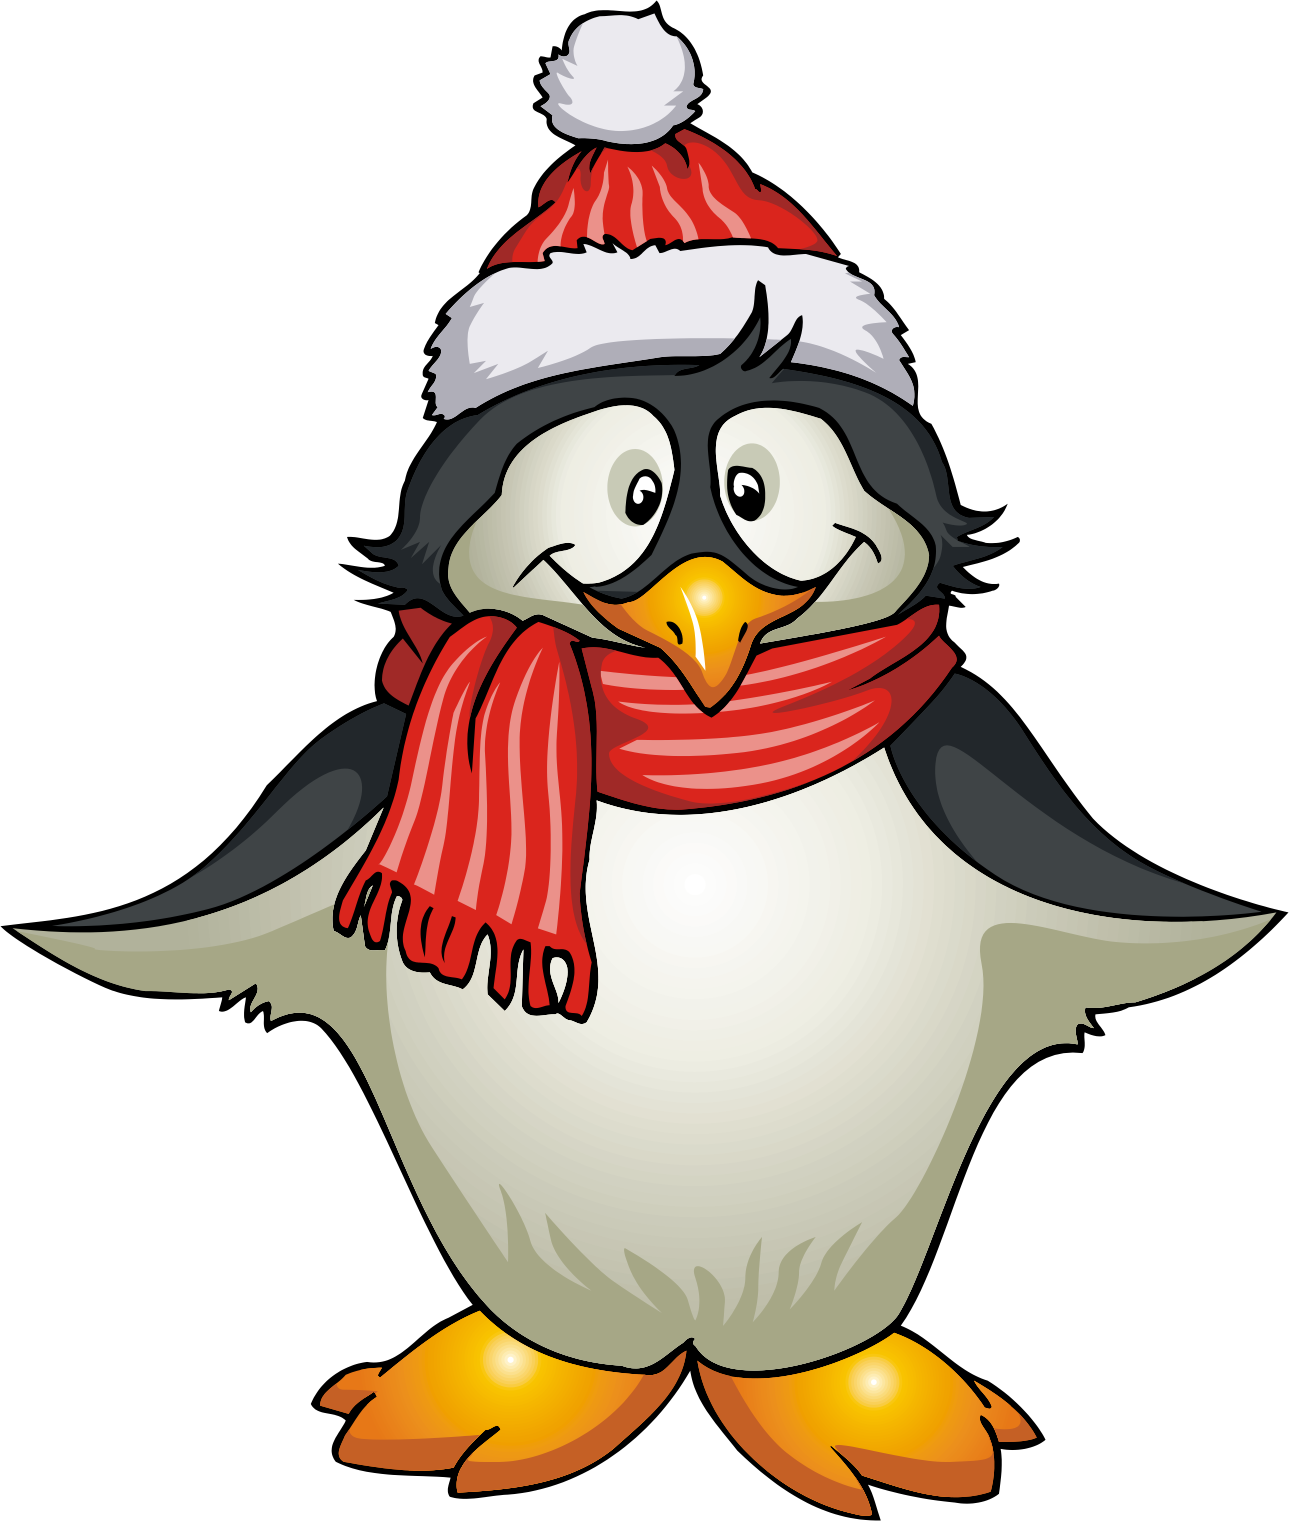 Winter Penguin Clip Art Black And White Winter Clipart Png Download Full Size Clipart 2121 Pinclipart